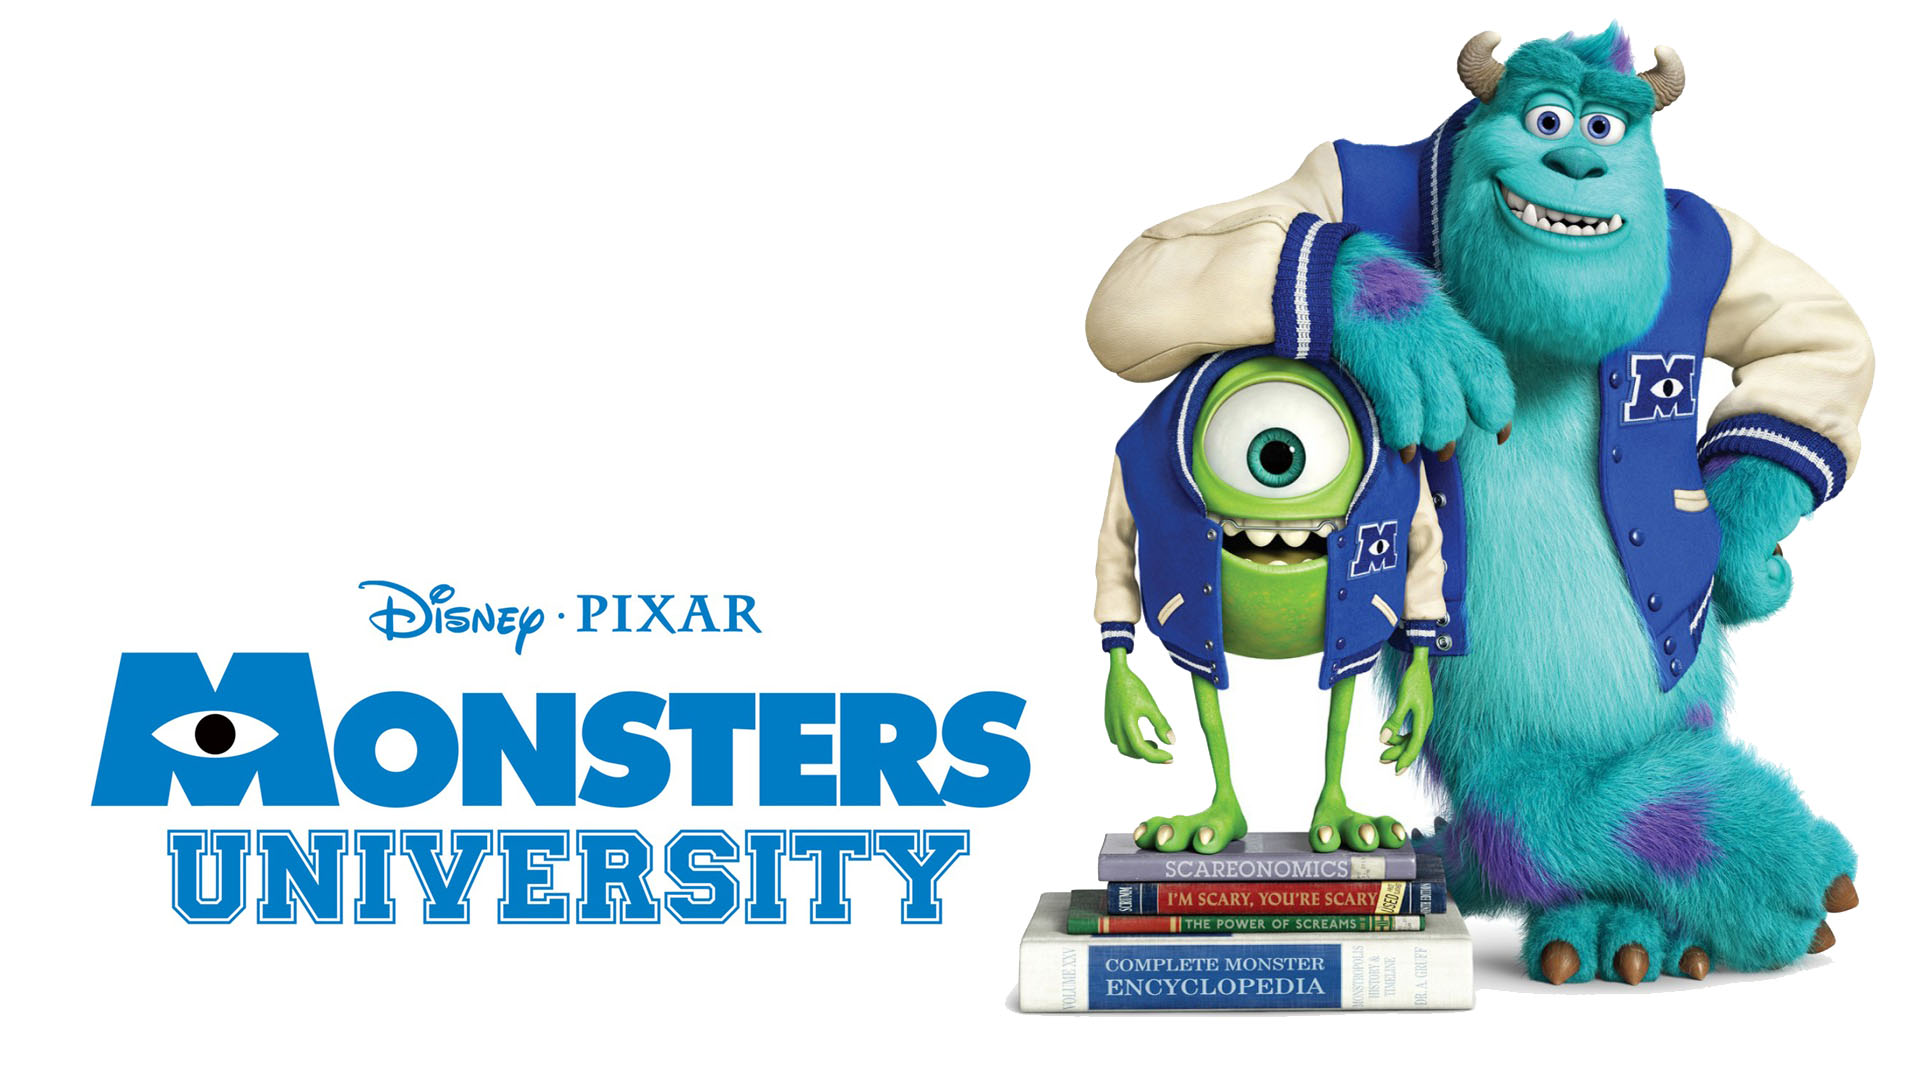 Hangover als Animation von Disney: die Monster Universität